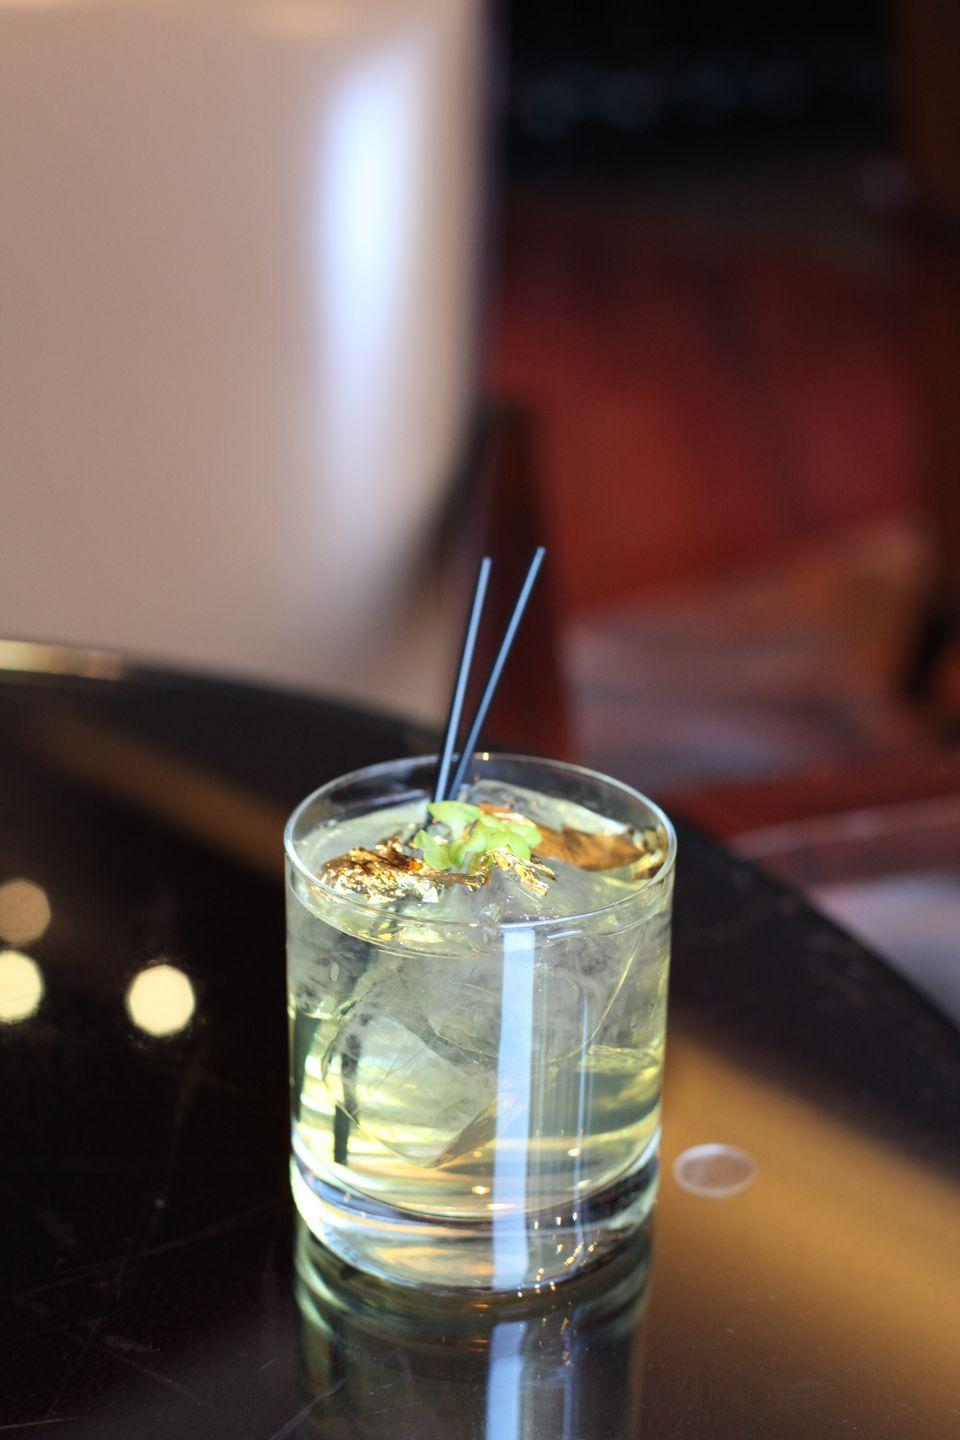 """<p><strong>Ingredients</strong></p><p>.75 oz Chartreuse<br>.75 oz Grand Marnier<br>Splash of Fever Tree Tonic Water<br>Edible gold flakes and microgreens</p><p><strong><strong>Instructions</strong></strong></p><p>Combine ingredients and mixing glass with ice and stir. Top with splash of tonic water and garnish with gold flakes and microgreens.</p><p><em>From The Four Seasons Denver in Denver, CO.</em></p><p><strong>More:</strong> <a href=""""https://www.townandcountrymag.com/leisure/drinks/g1165/best-st-patricks-day-cocktails/"""" rel=""""nofollow noopener"""" target=""""_blank"""" data-ylk=""""slk:The Best Cocktails to Sip on St. Patrick's Day"""" class=""""link rapid-noclick-resp"""">The Best Cocktails to Sip on St. Patrick's Day</a><br></p>"""